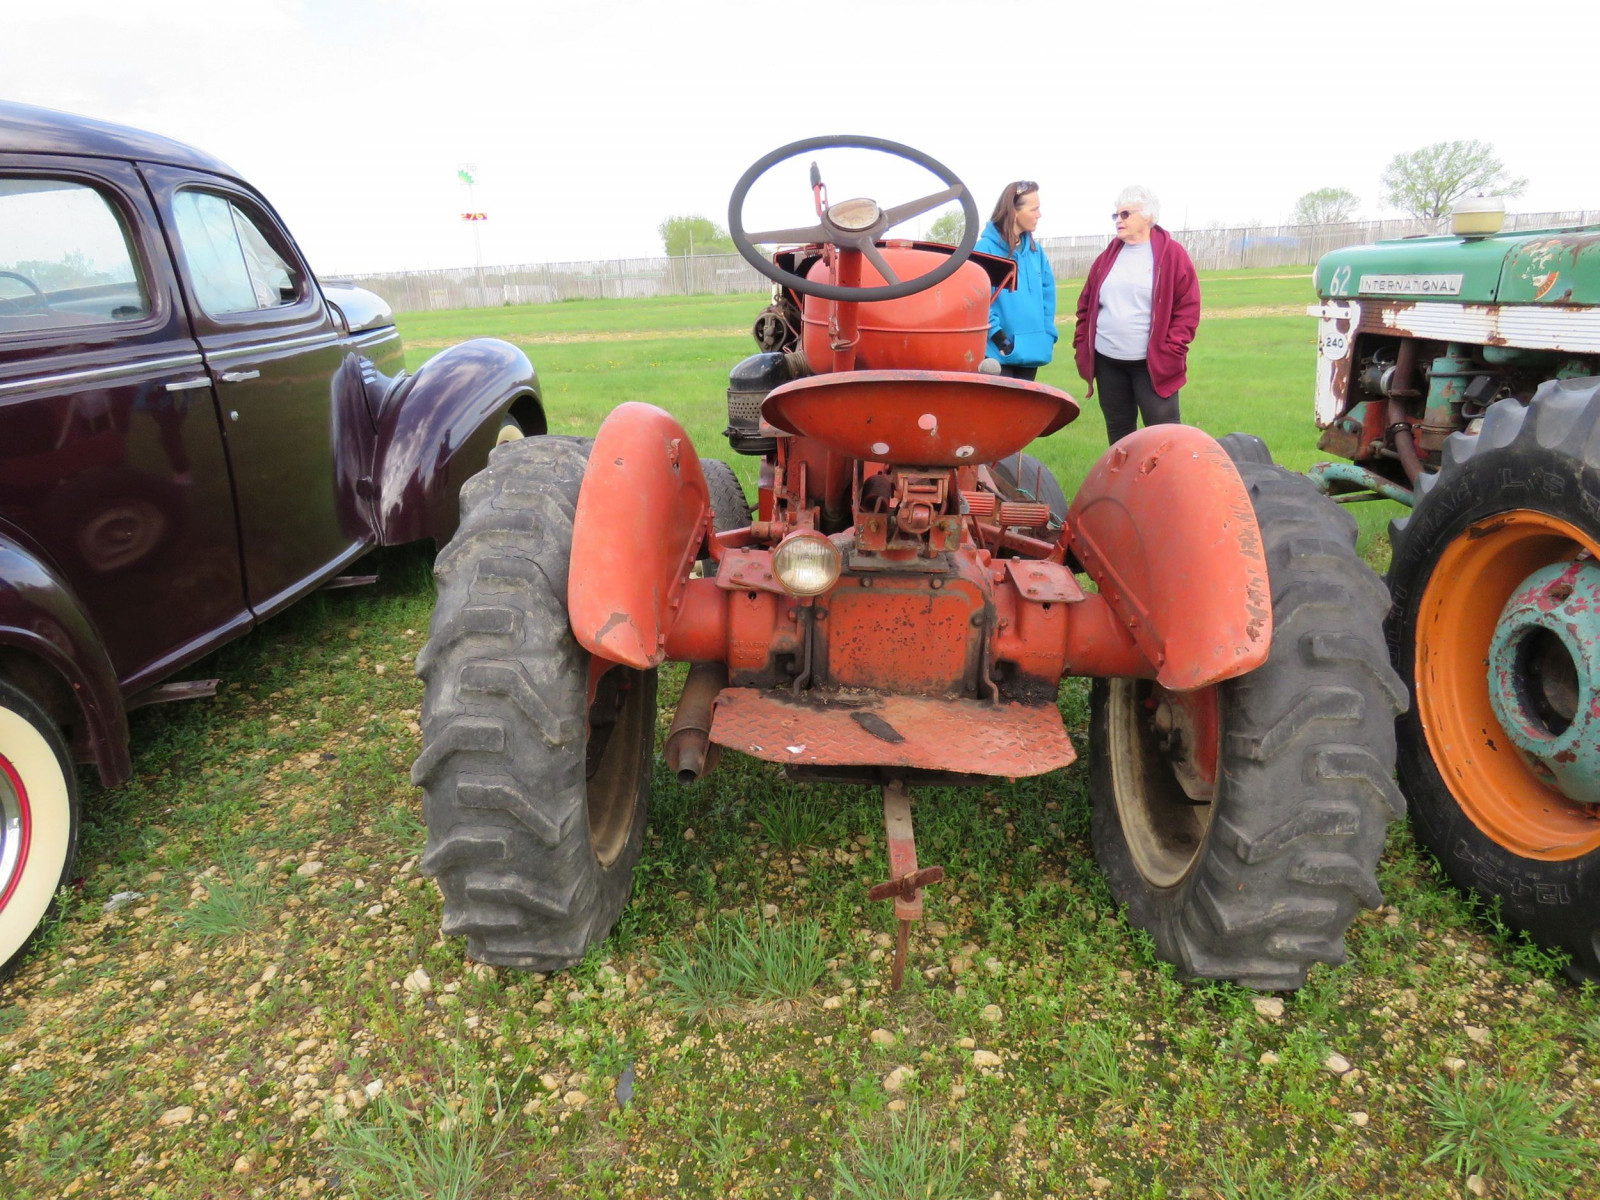 Homemade tractor - Image 5